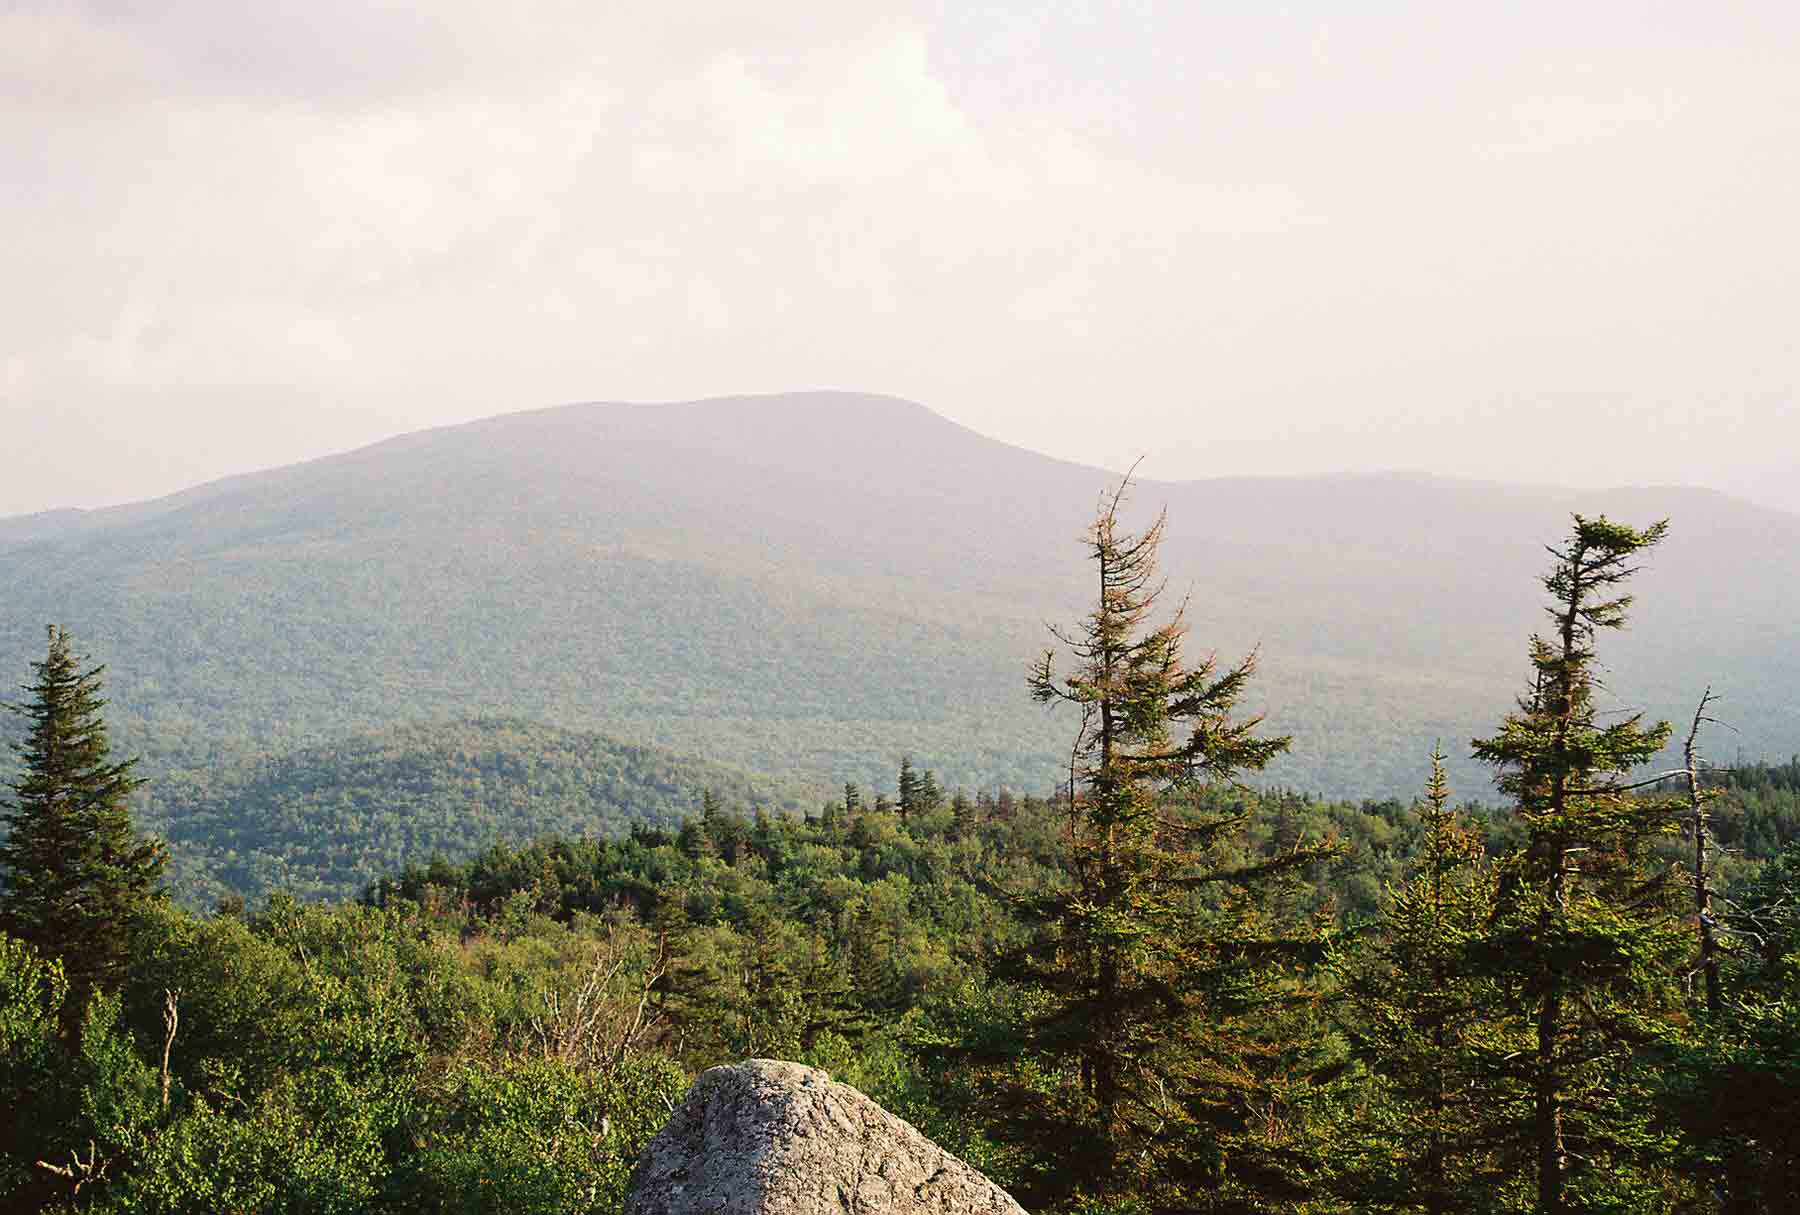 mm 3.5 Smart's Mt. from Mt. Cube. Courtesy dlcul@conncoll.edu